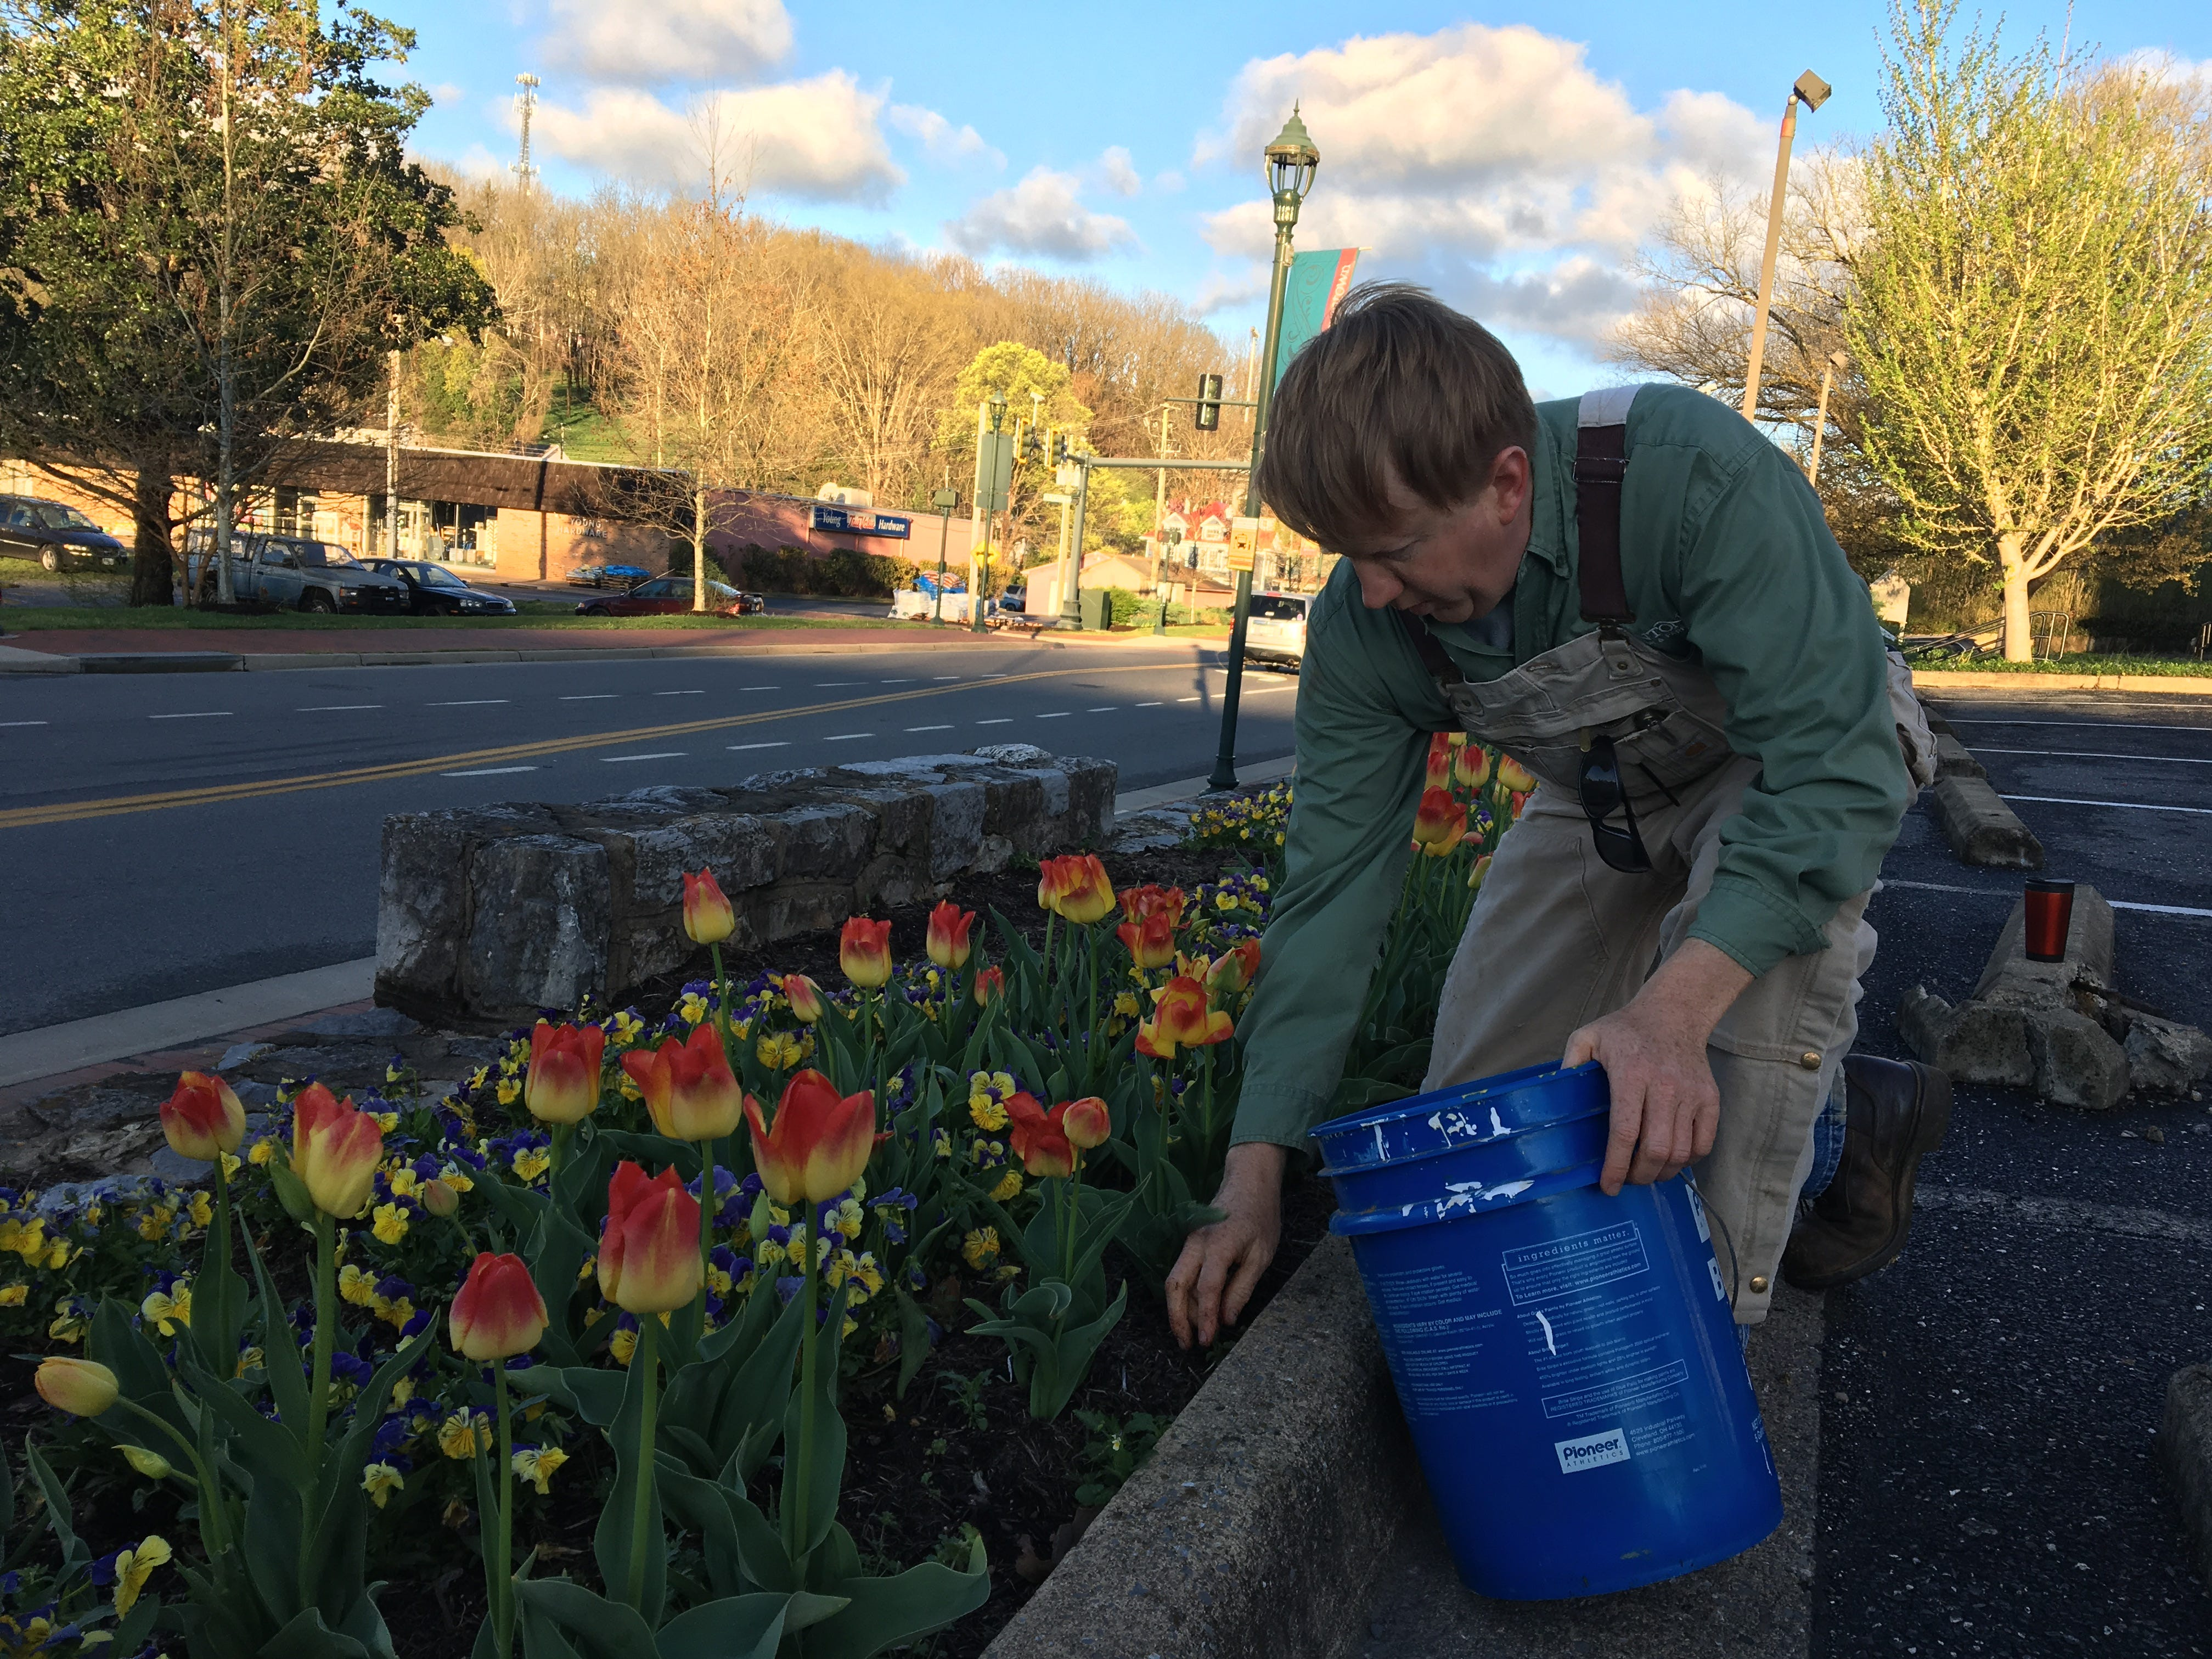 Horticulturist Matthew Sensabaugh tends to the flower bed in front of the Staunton Public Library.